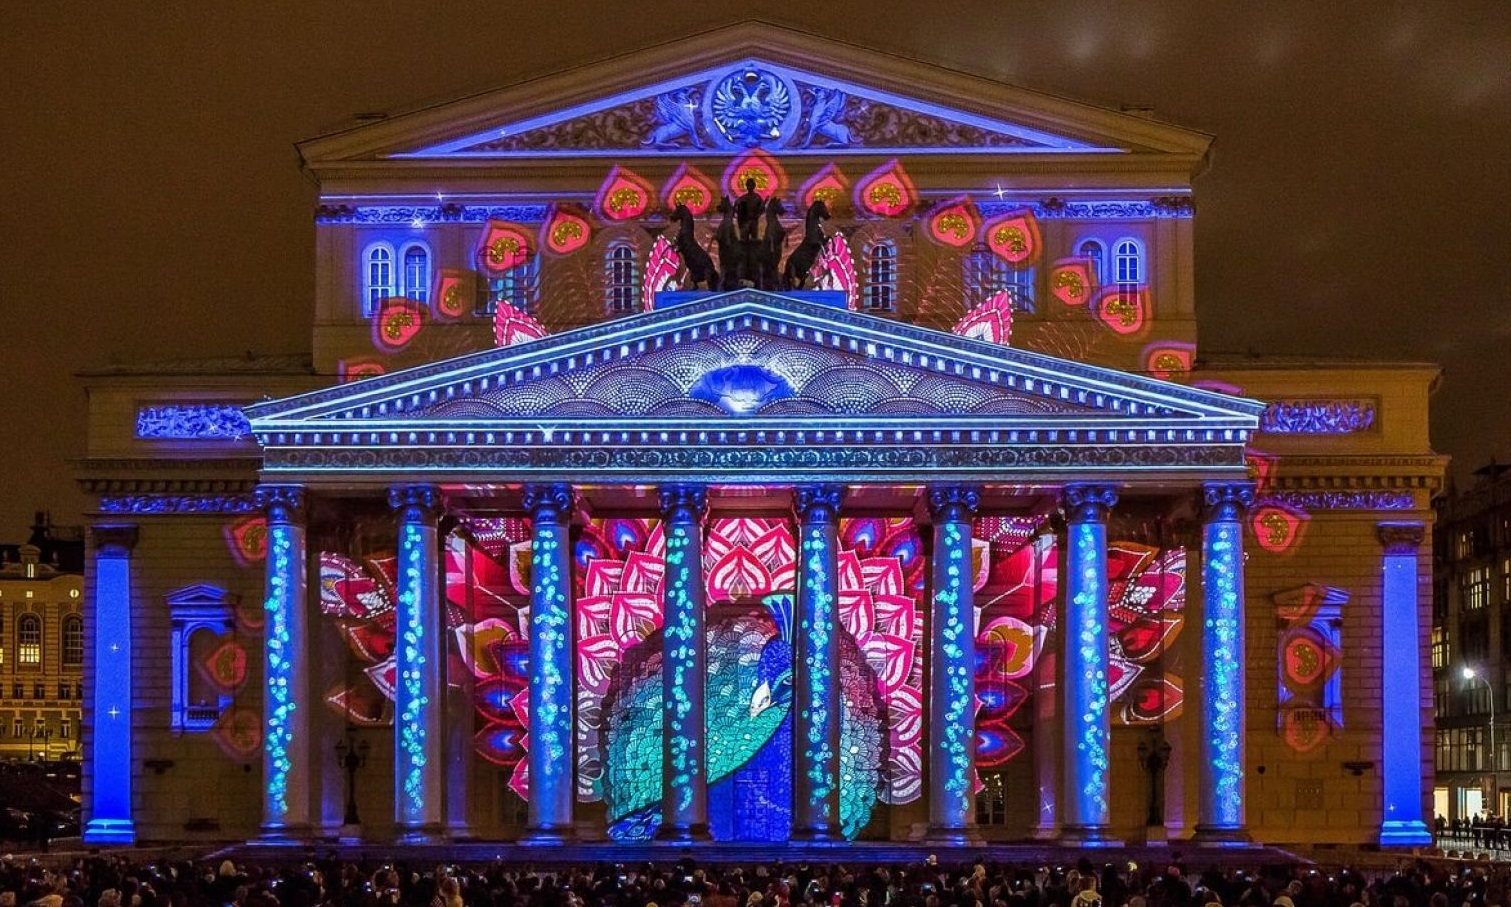 Festival of Light in Moscow: what was the event in 2017 36